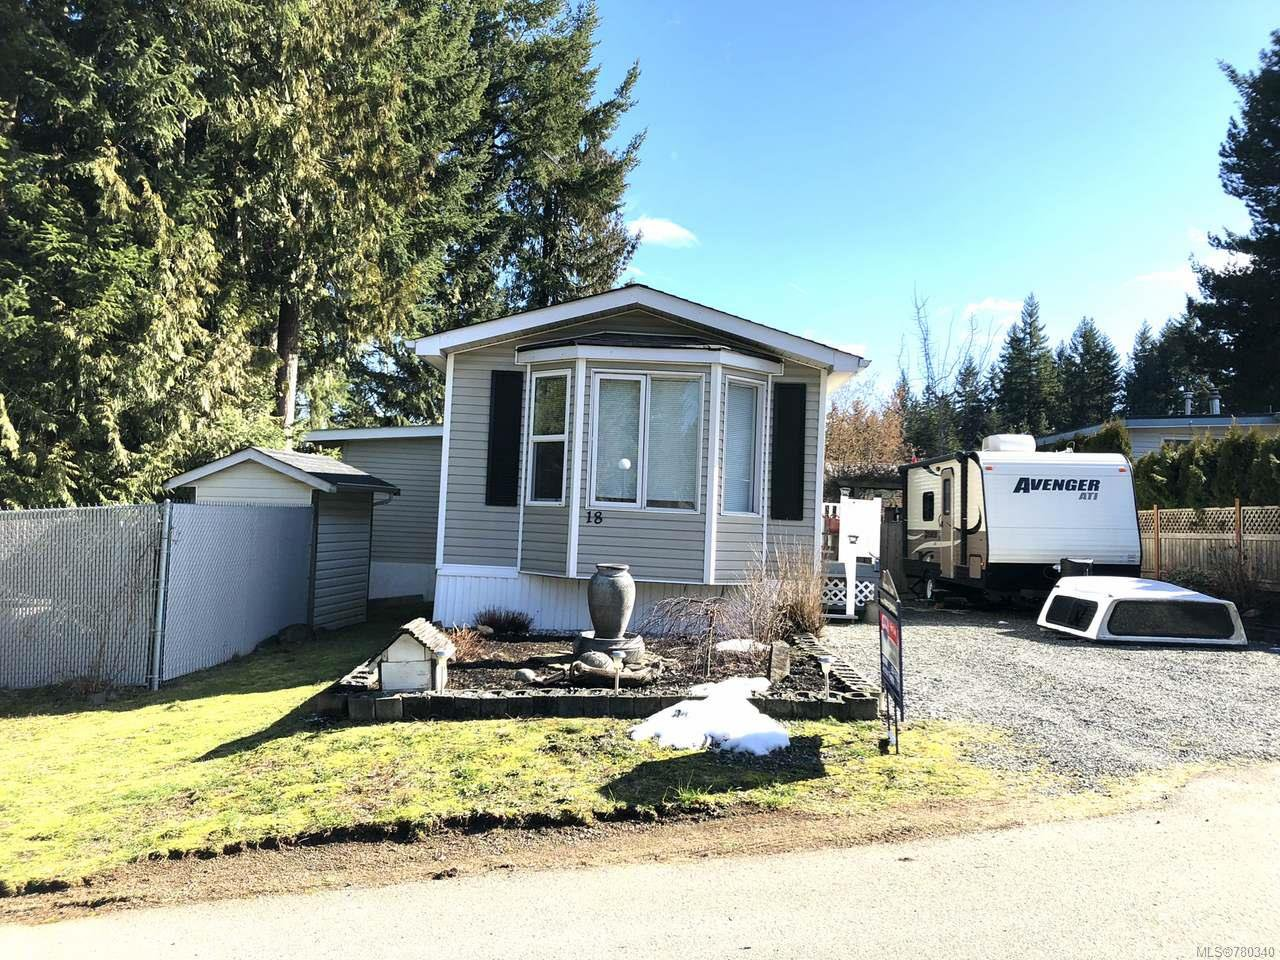 Main Photo: 18 3100 RINVOLD ROAD in QUALICUM BEACH: PQ Errington/Coombs/Hilliers Manufactured Home for sale (Parksville/Qualicum)  : MLS®# 780340